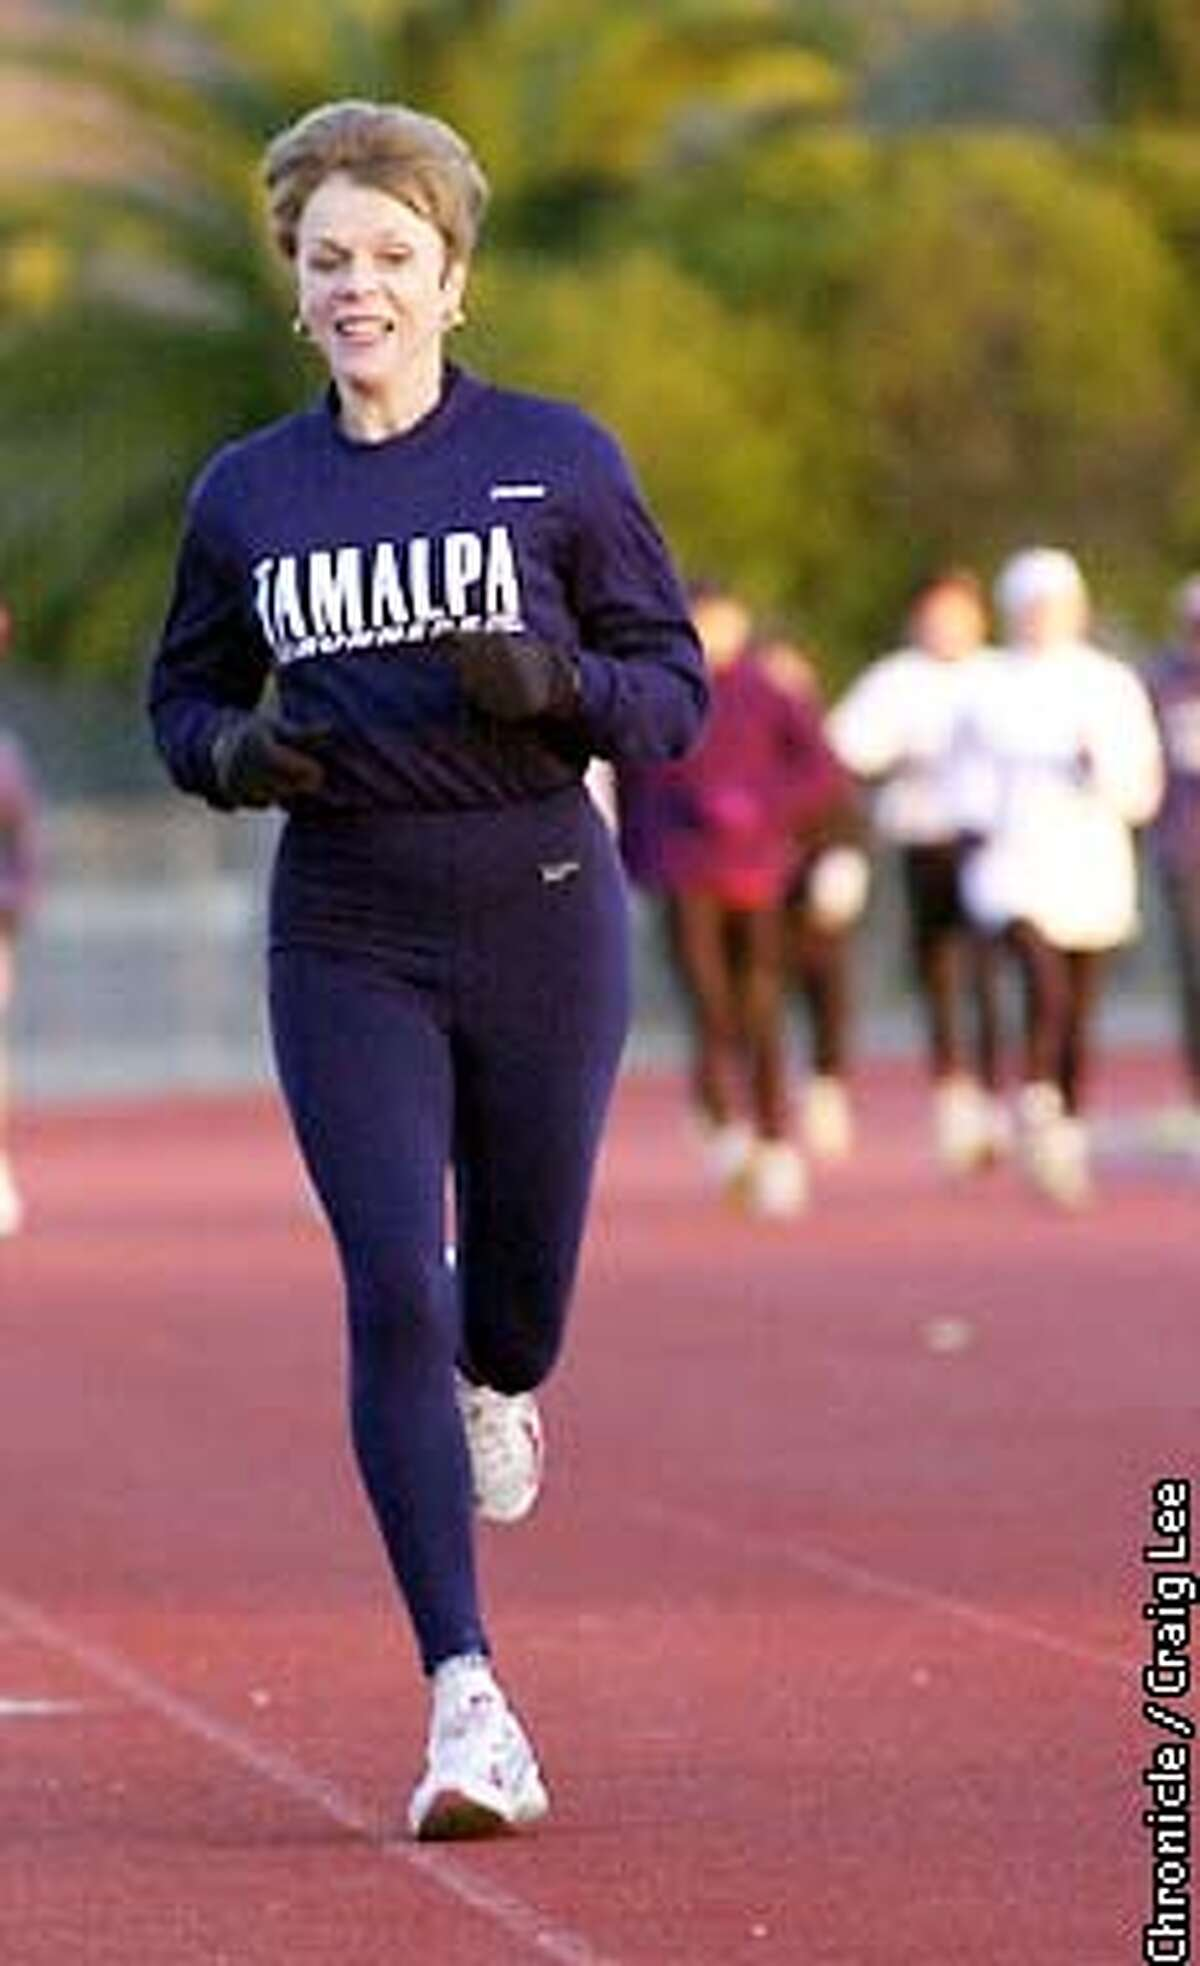 Shirley Matson didn't take up running until she was in her late 30's-early 40's, and now at age 61, she holds about every middle- to long-distance running record for women in age groups 50 and up. Photo of her on the track at the College of Marin. Photo by Craig Lee/San Francisco Chronicle